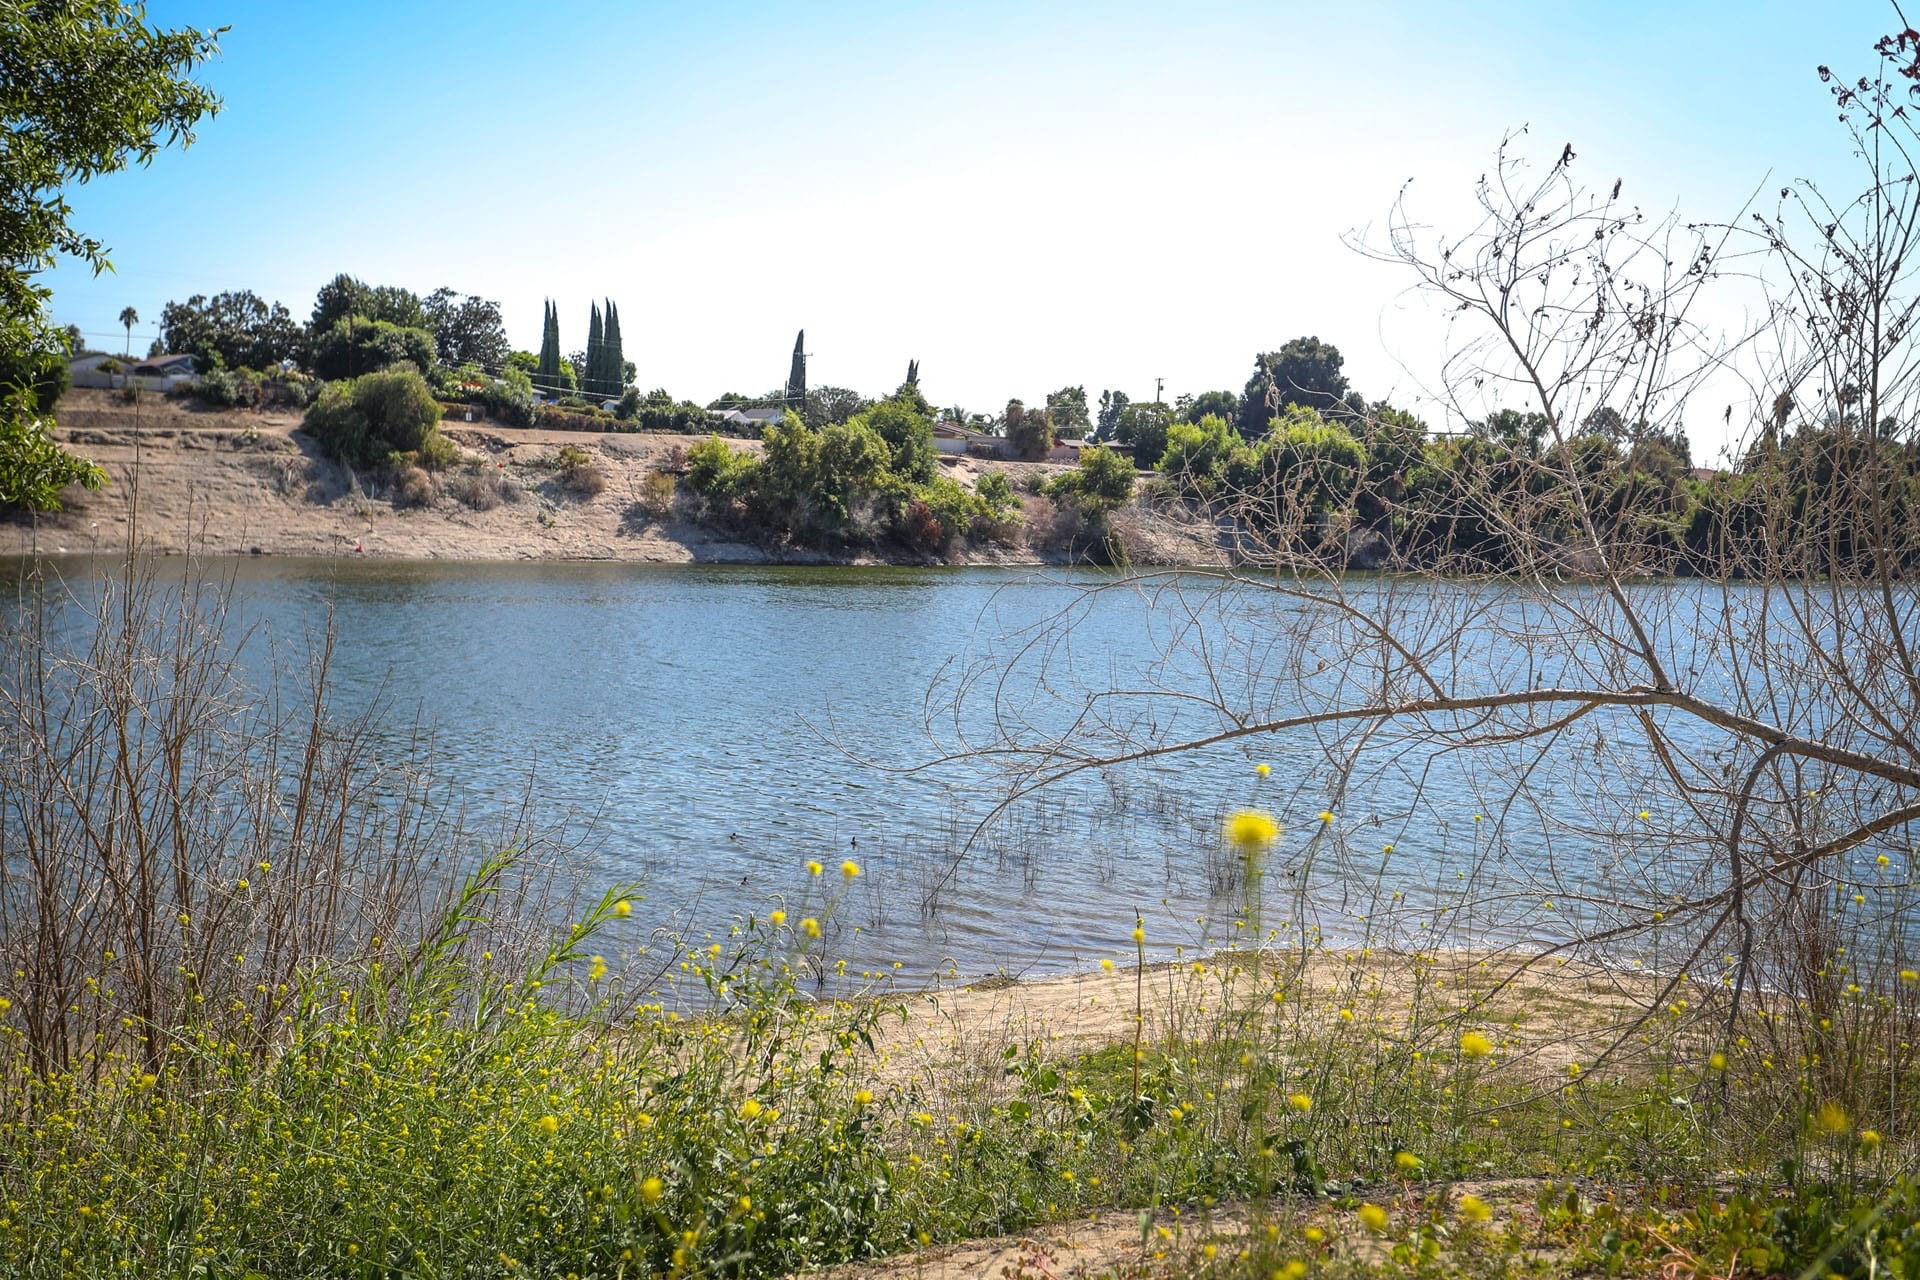 Yellow flowers in foreground, lake in background